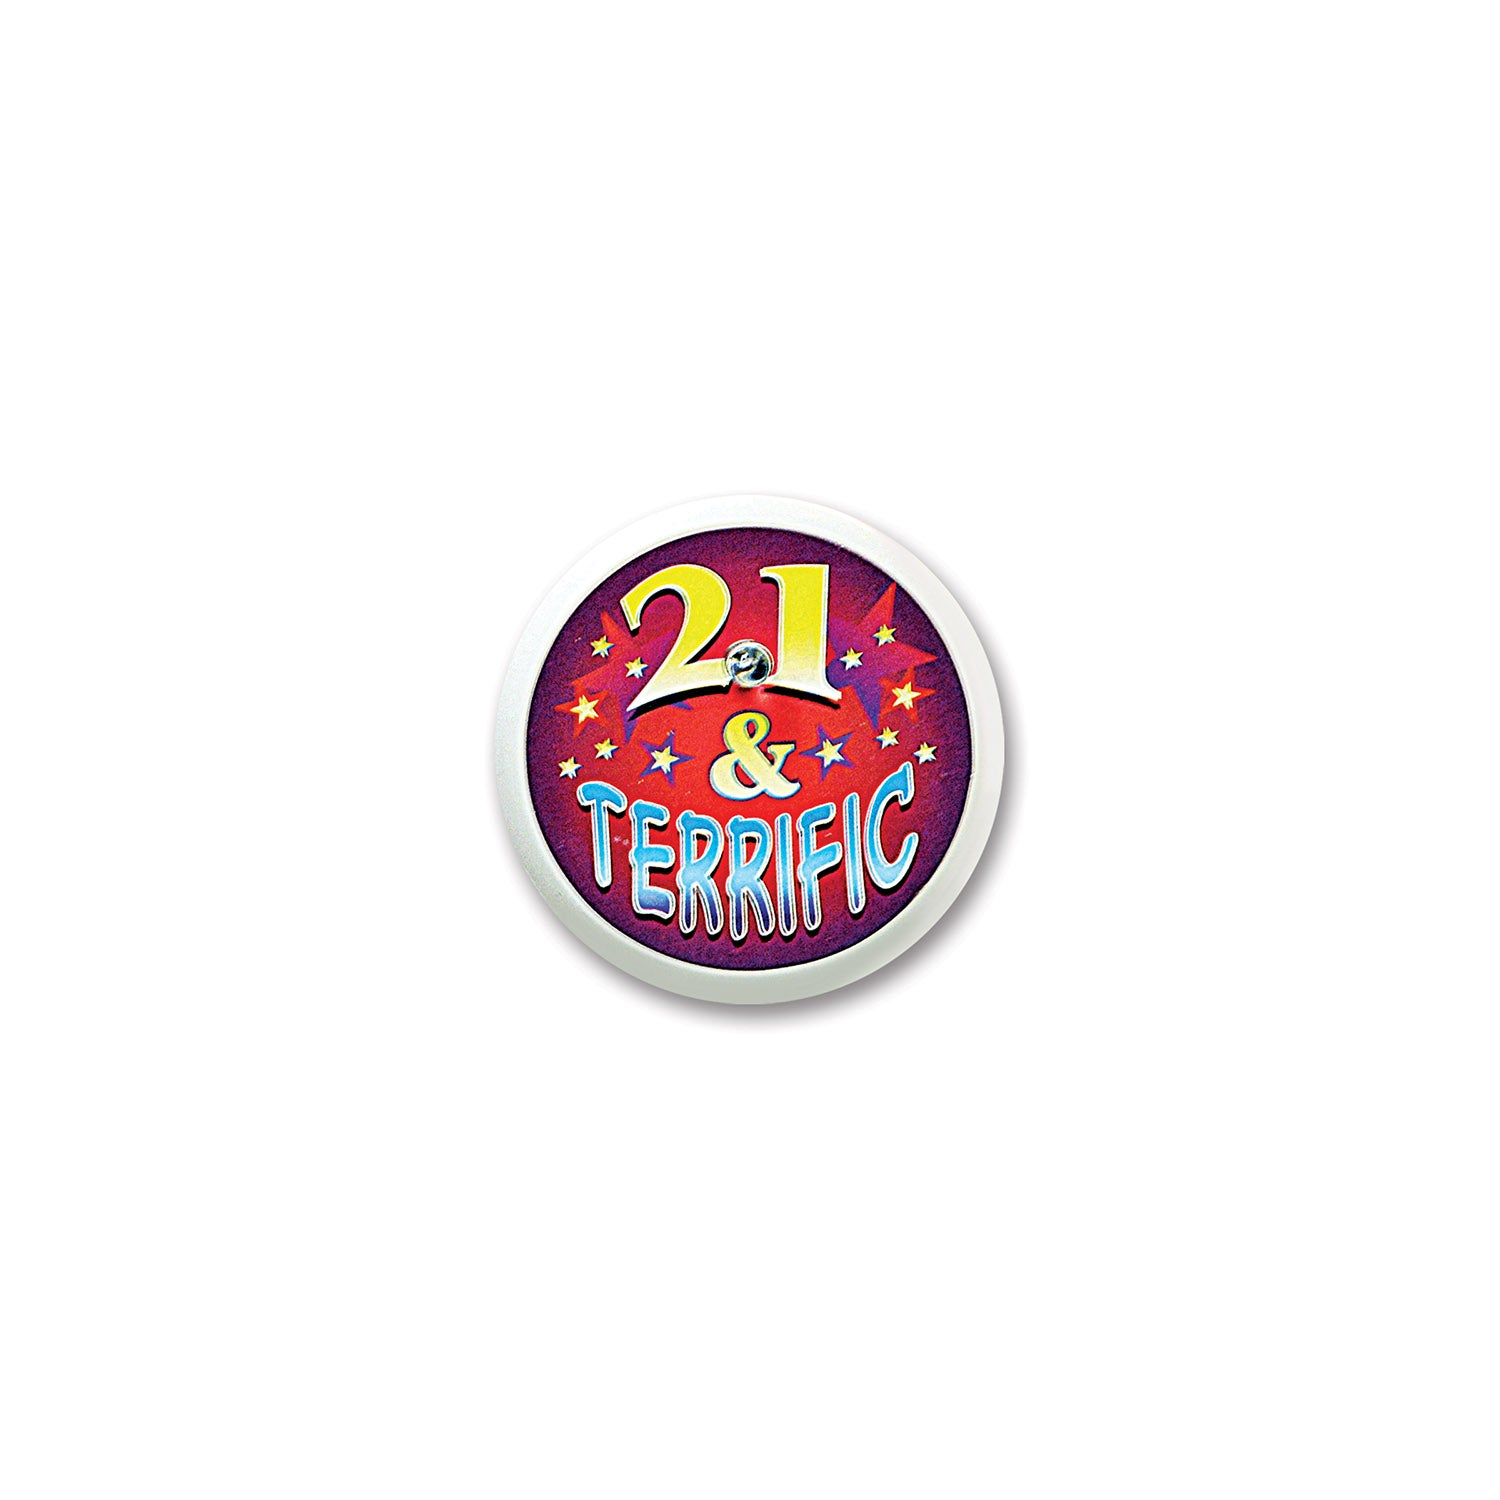 21 & Terrific Blinking Button by Beistle - 21st Birthday Theme Decorations